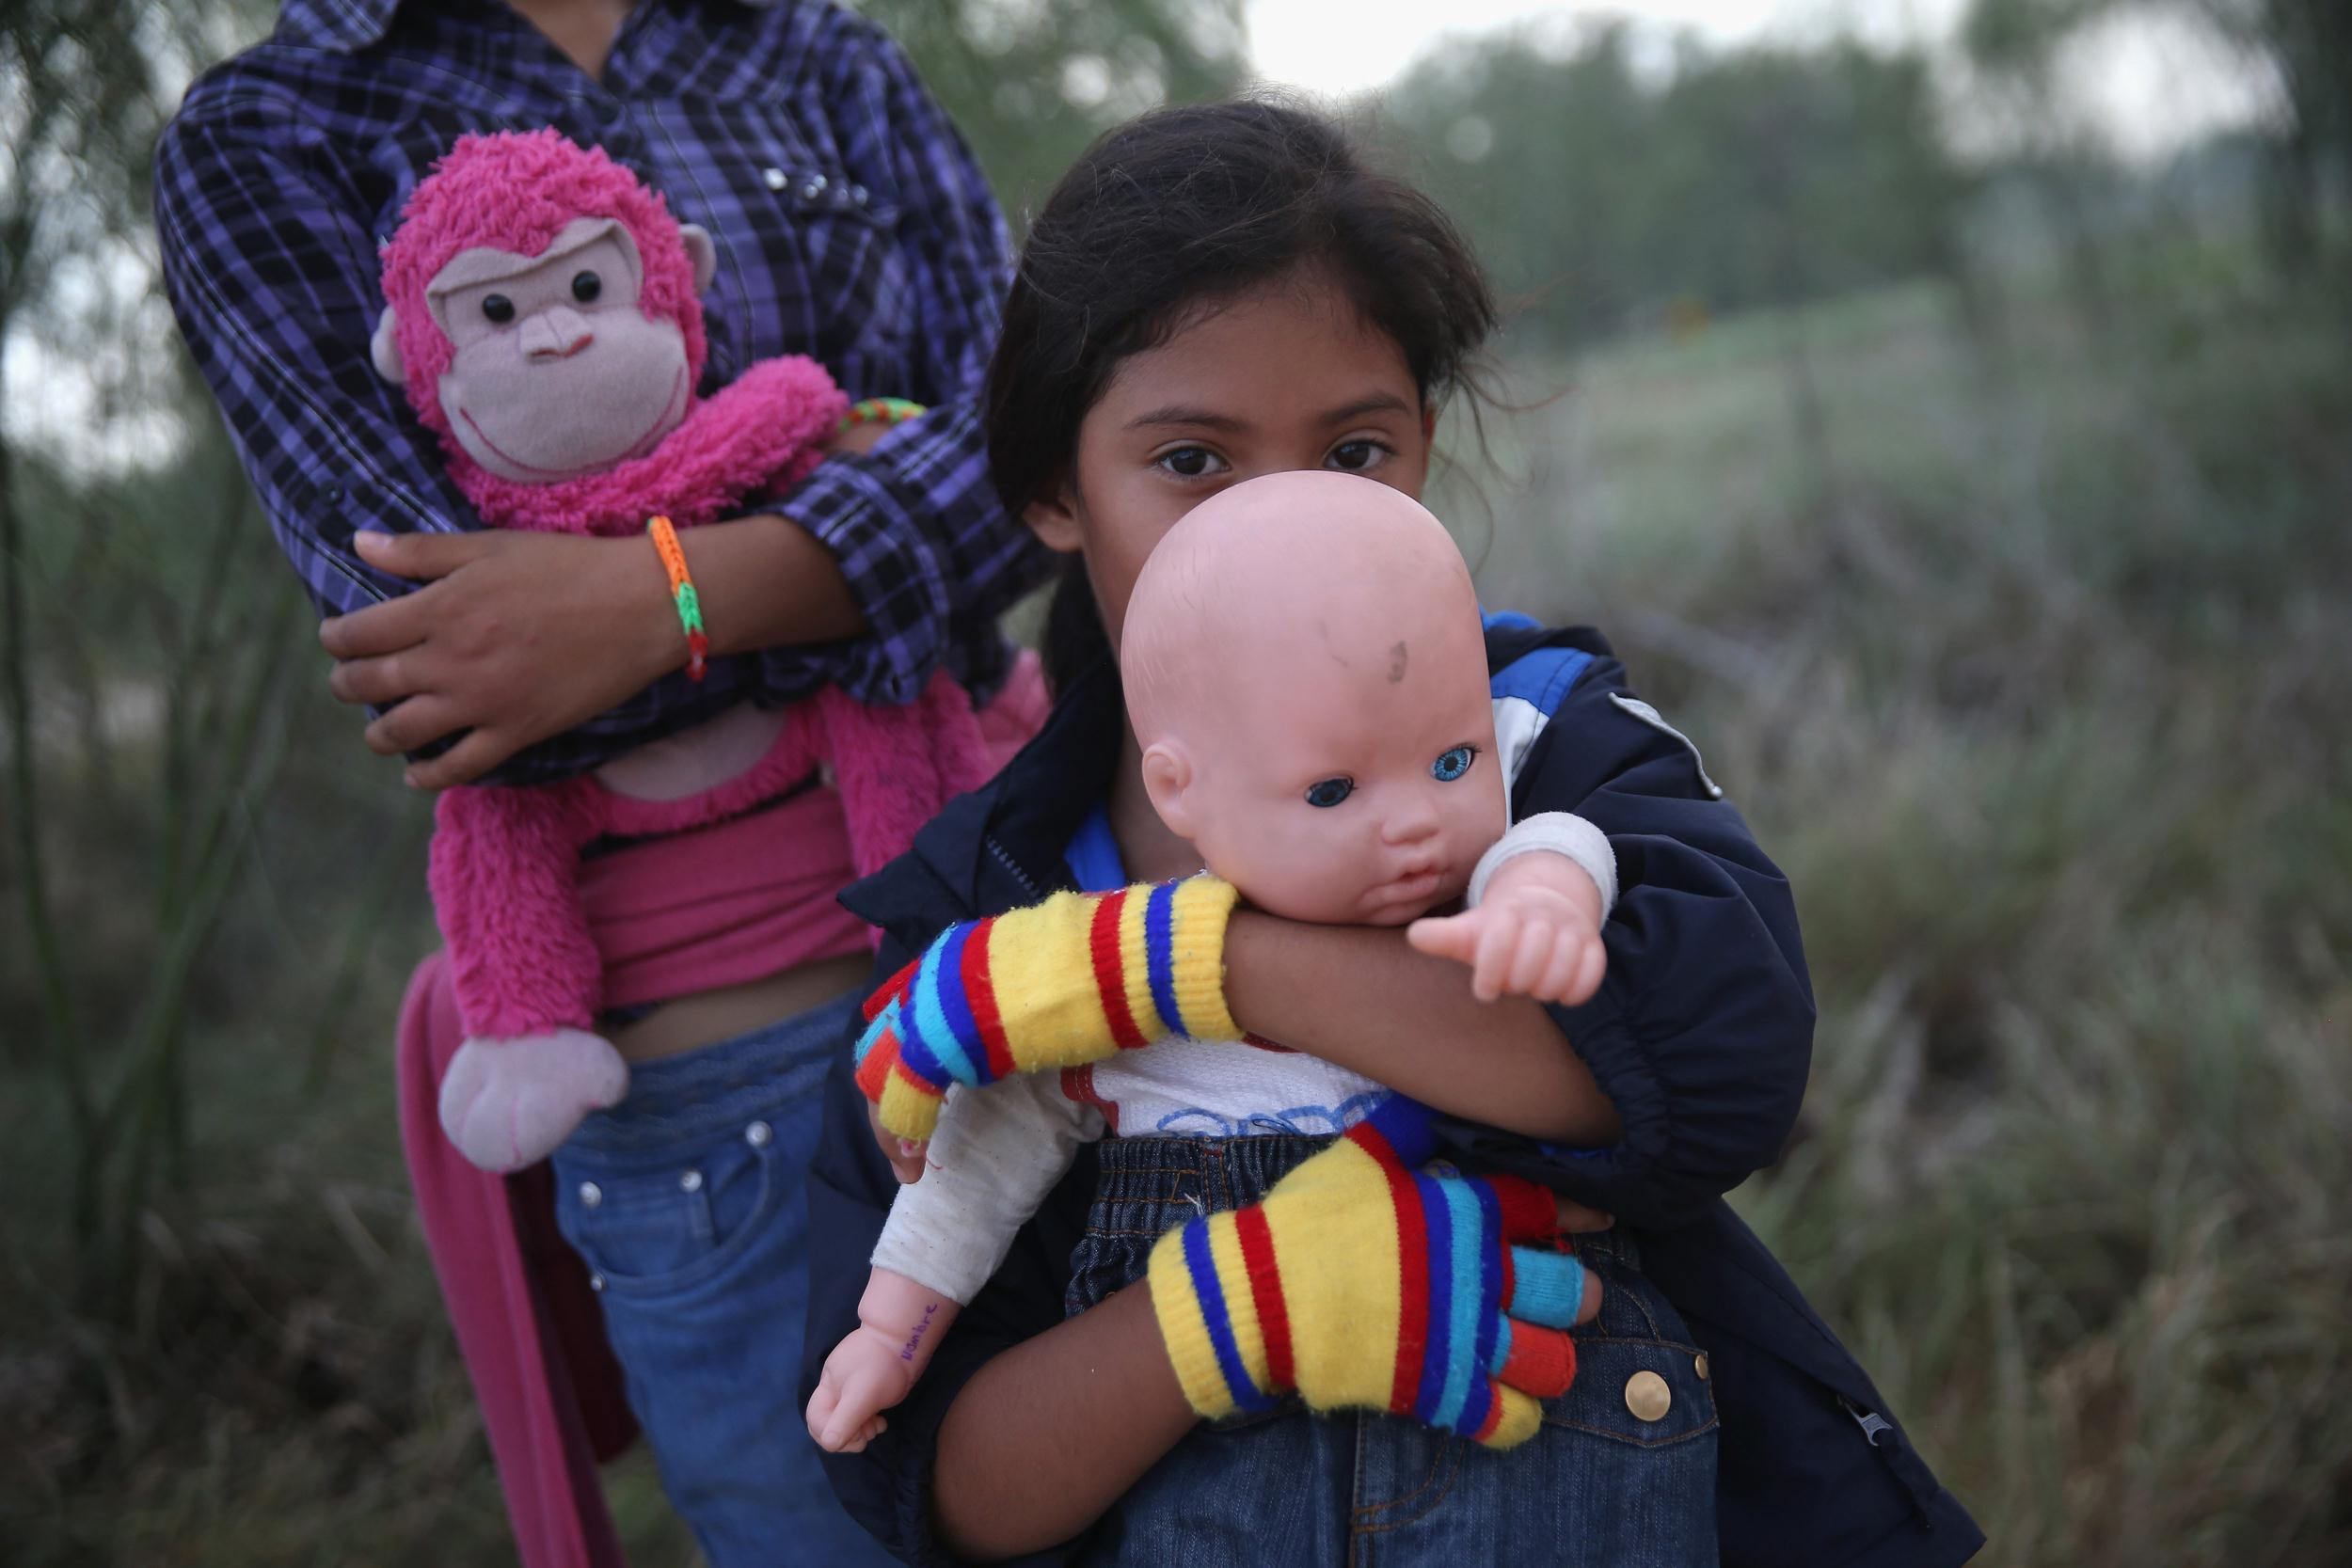 Image: Salvadorian immigrant Stefany Marjorie, 8, holds her doll Rodrigo after crossing the Rio Grande from Mexico into the United States